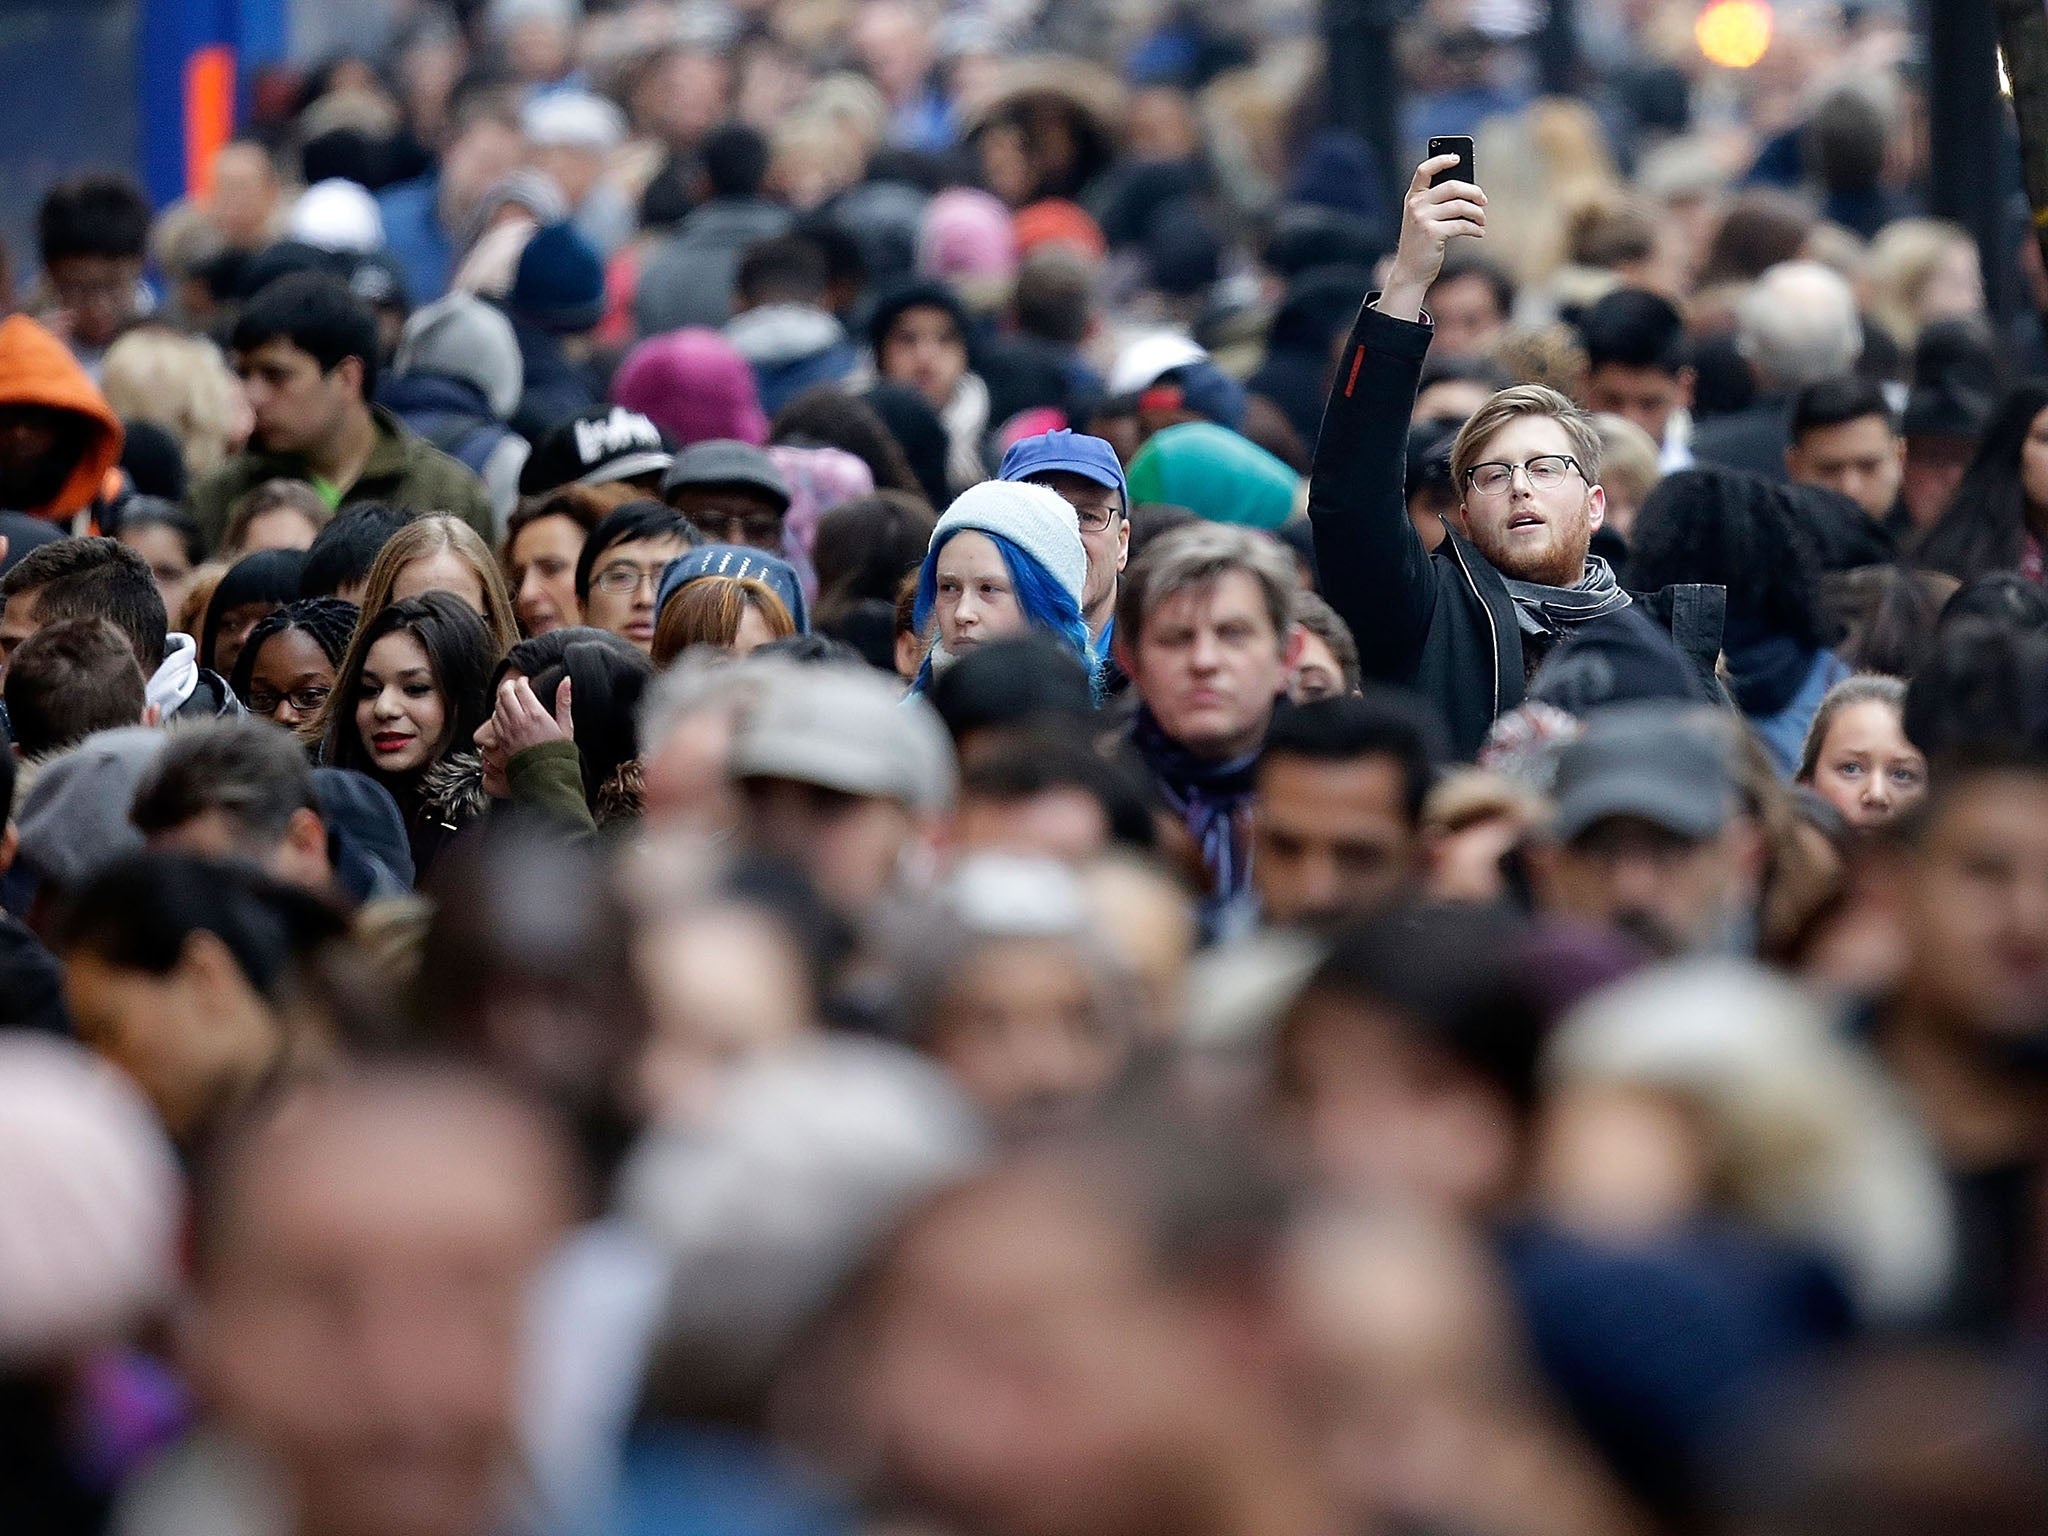 UK population grows by half a million in a year to reach 65.1 million | The Independent